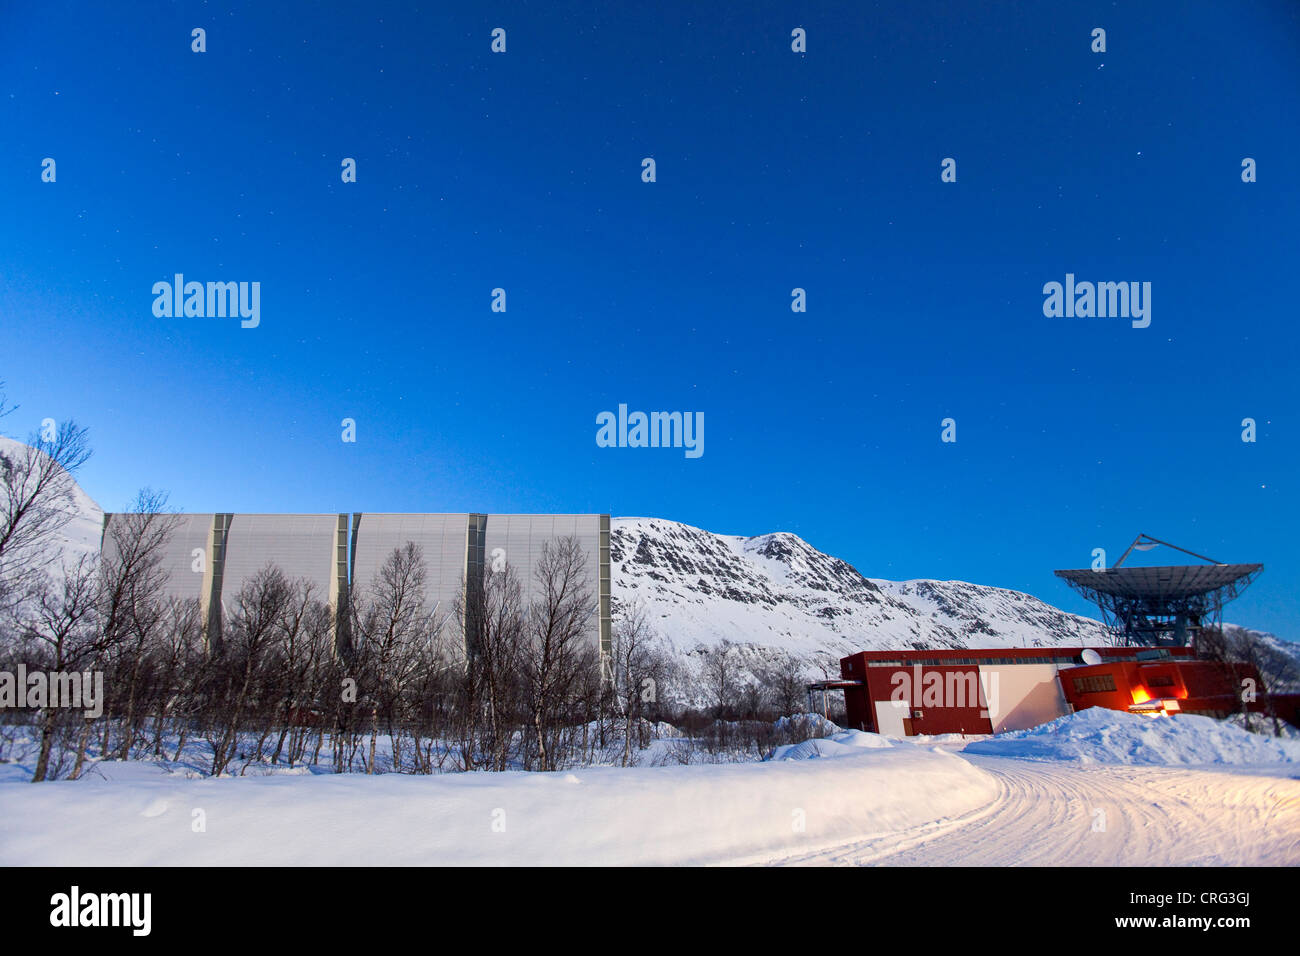 EISCAT antennas to research the atmosphere, Norway, Troms, Ramfjordmoen Stock Photo